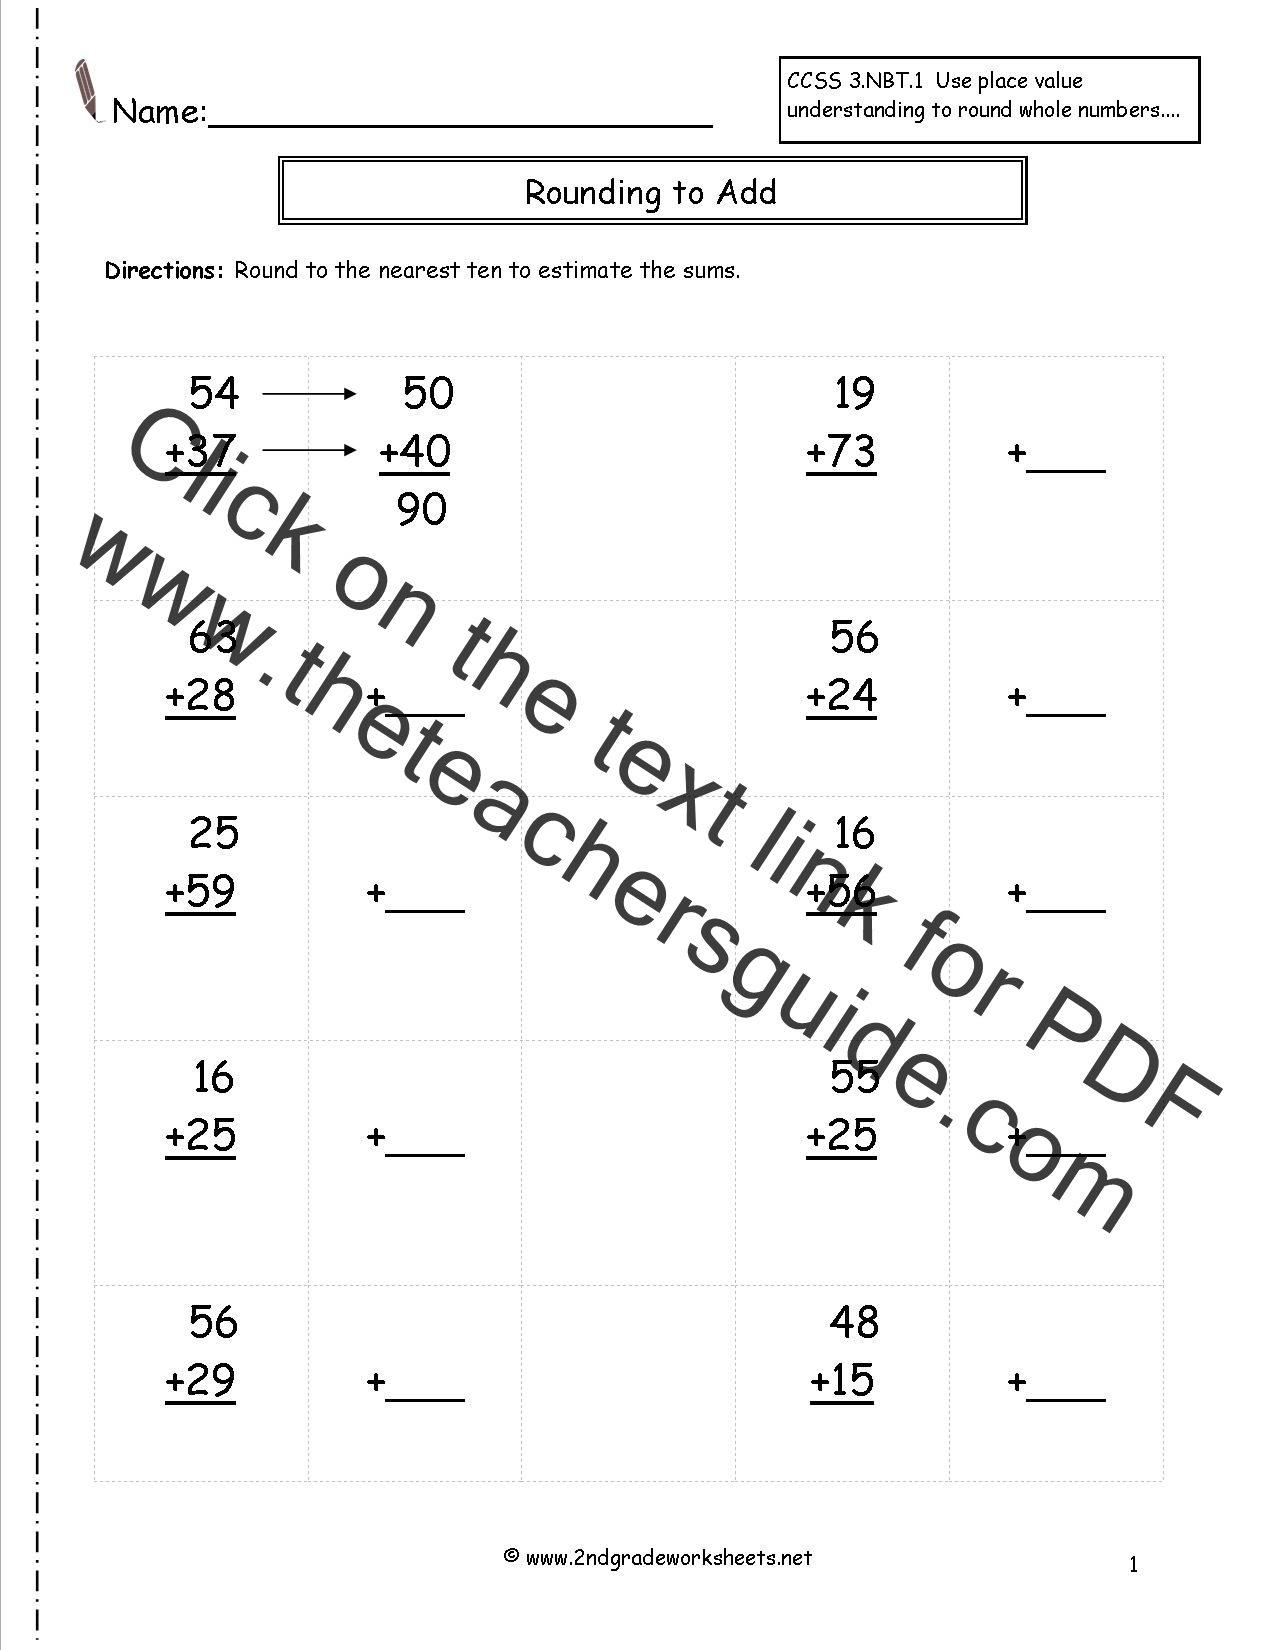 Addition Of Whole Numbers Worksheets free third grade math – Addition of Whole Numbers Worksheets